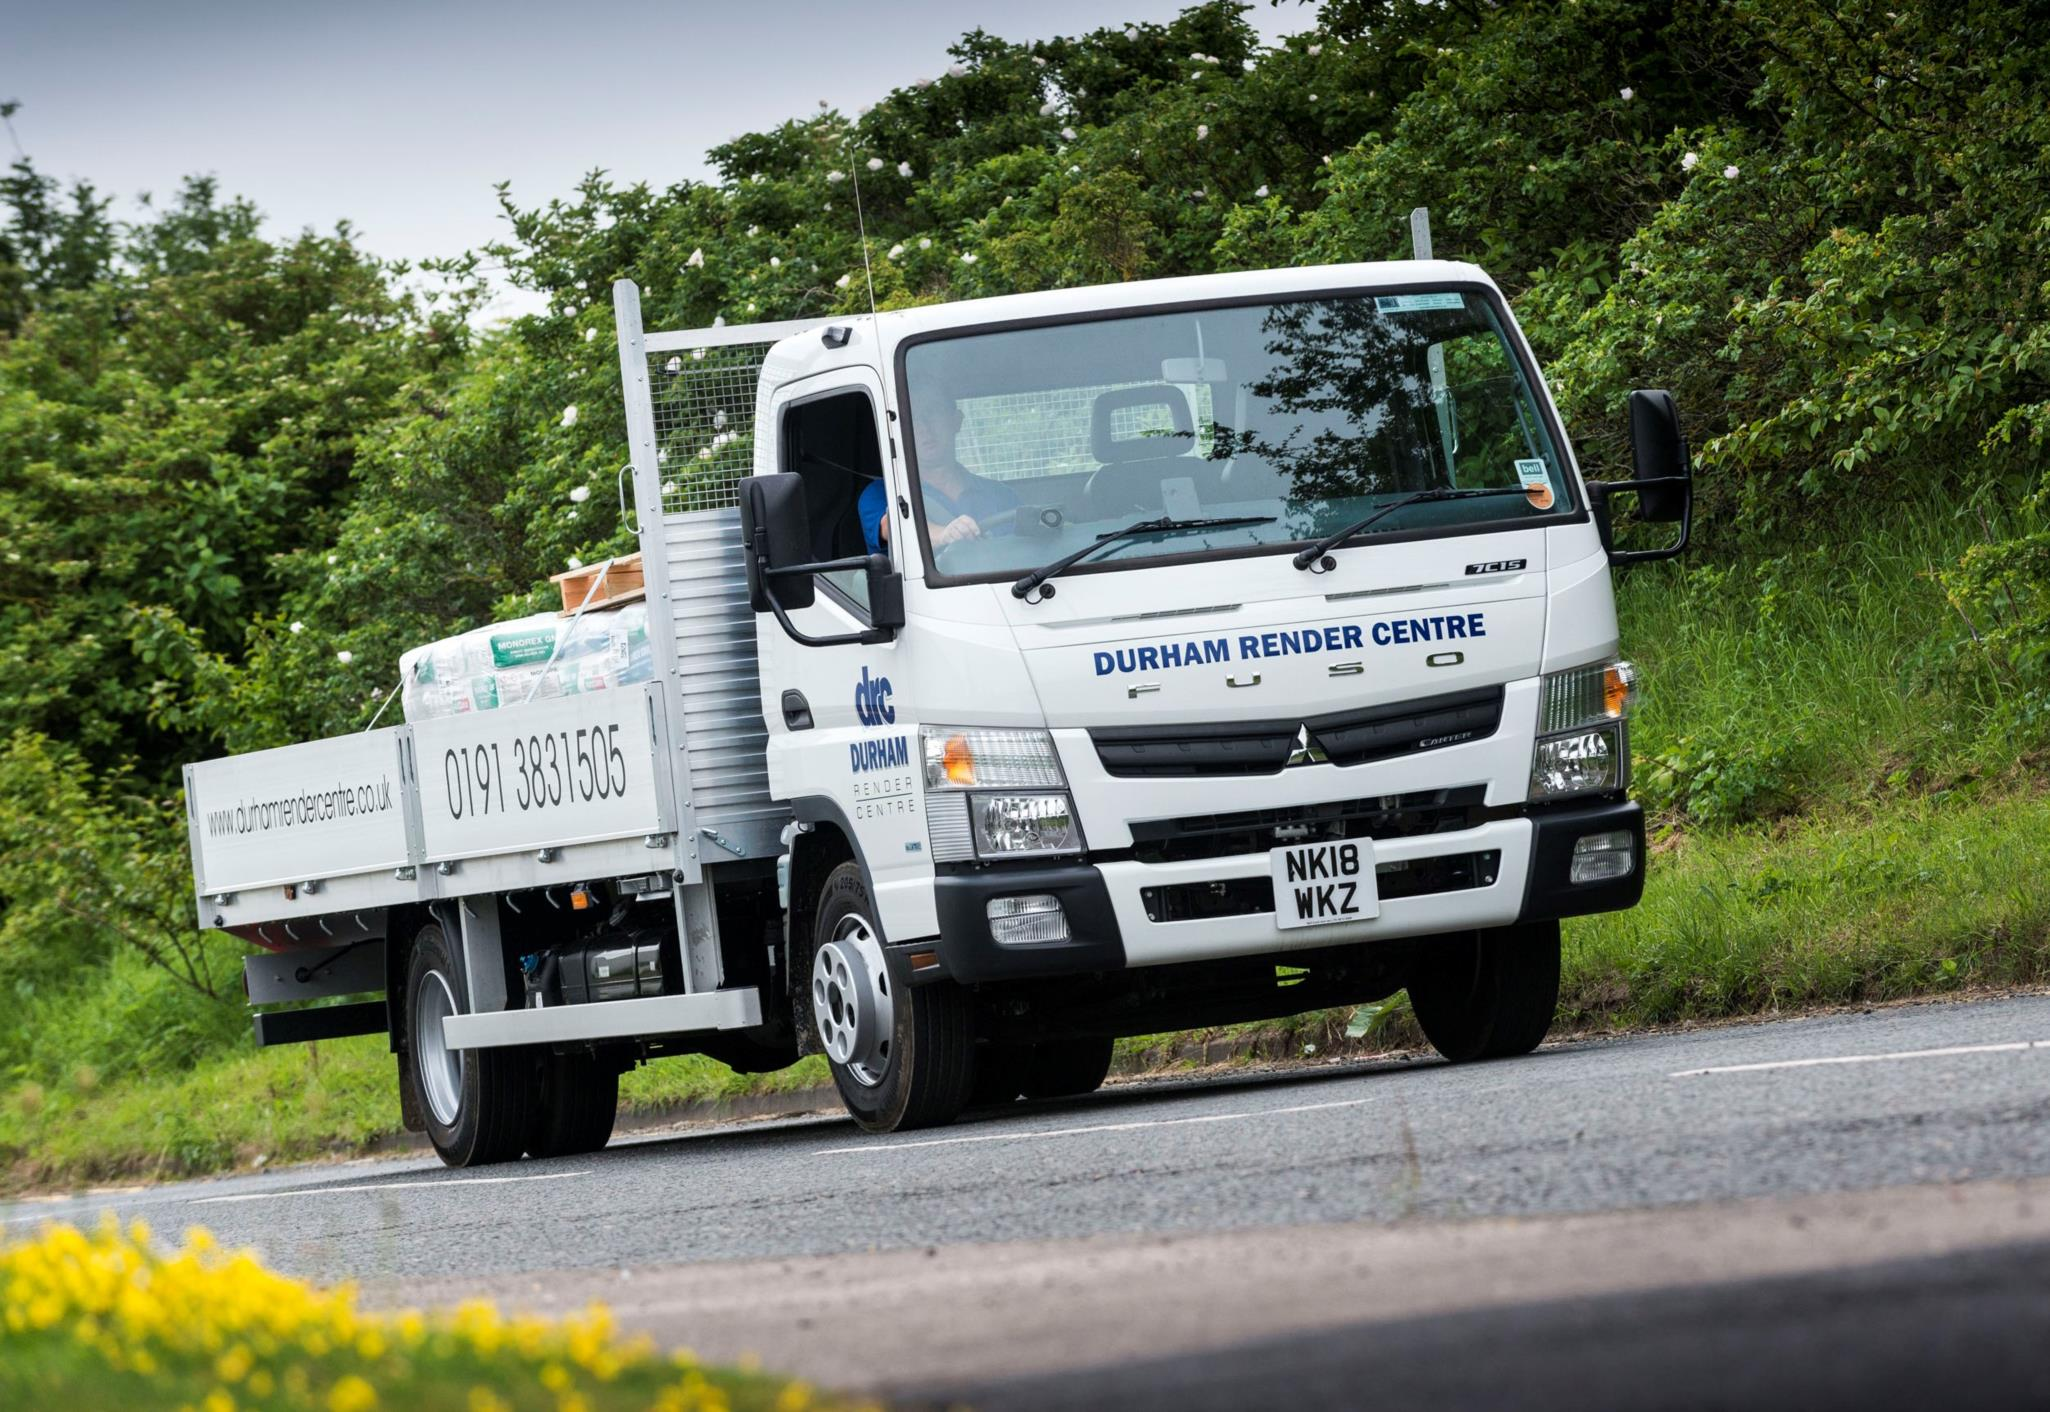 Durham Render Centre goes back to the future with new FUSO